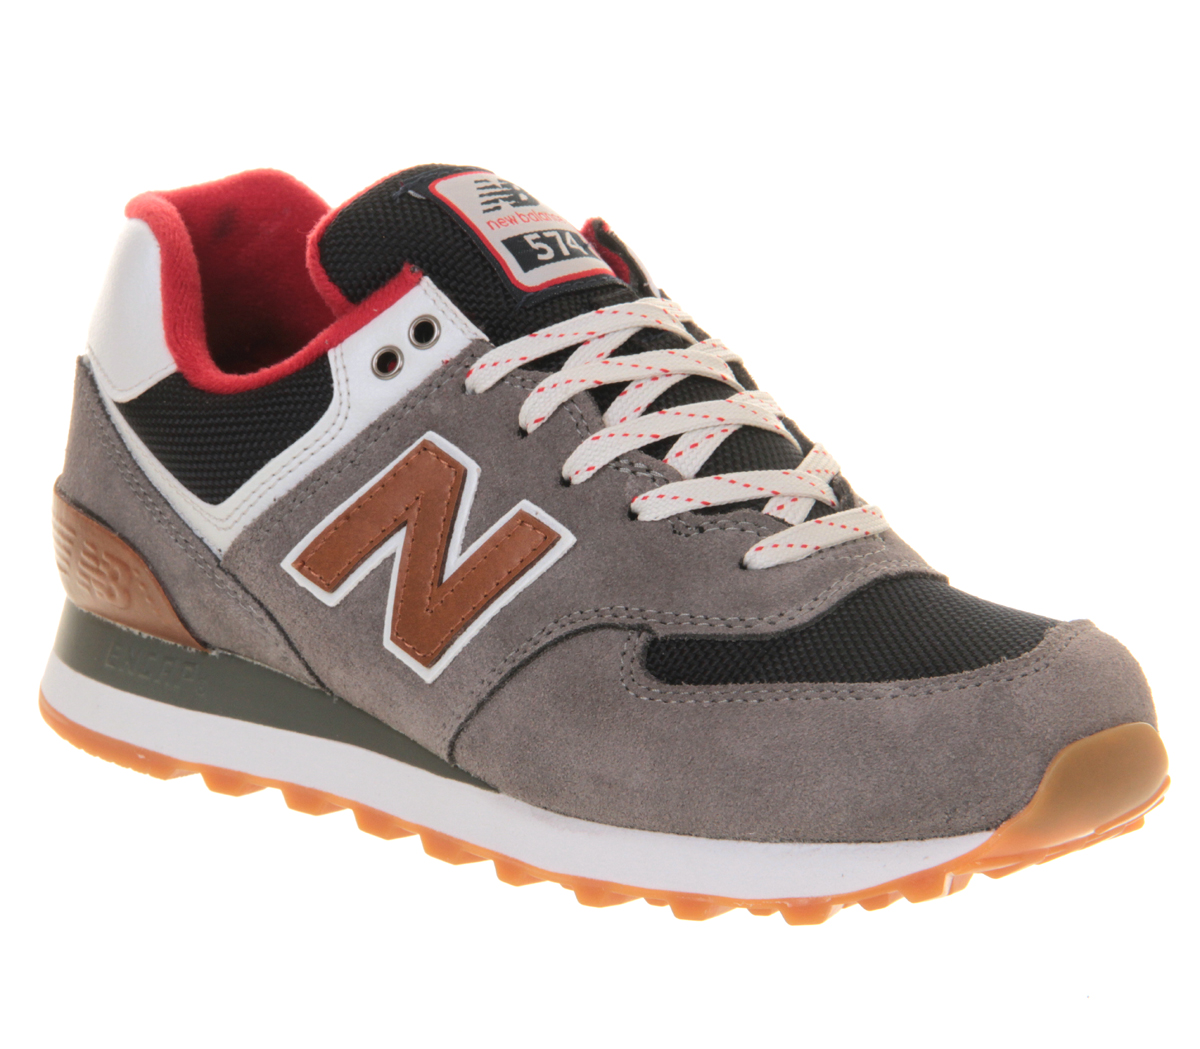 New-Balance-New-Balance-M574-GREY-RED-BROWN-Trainers-Shoes